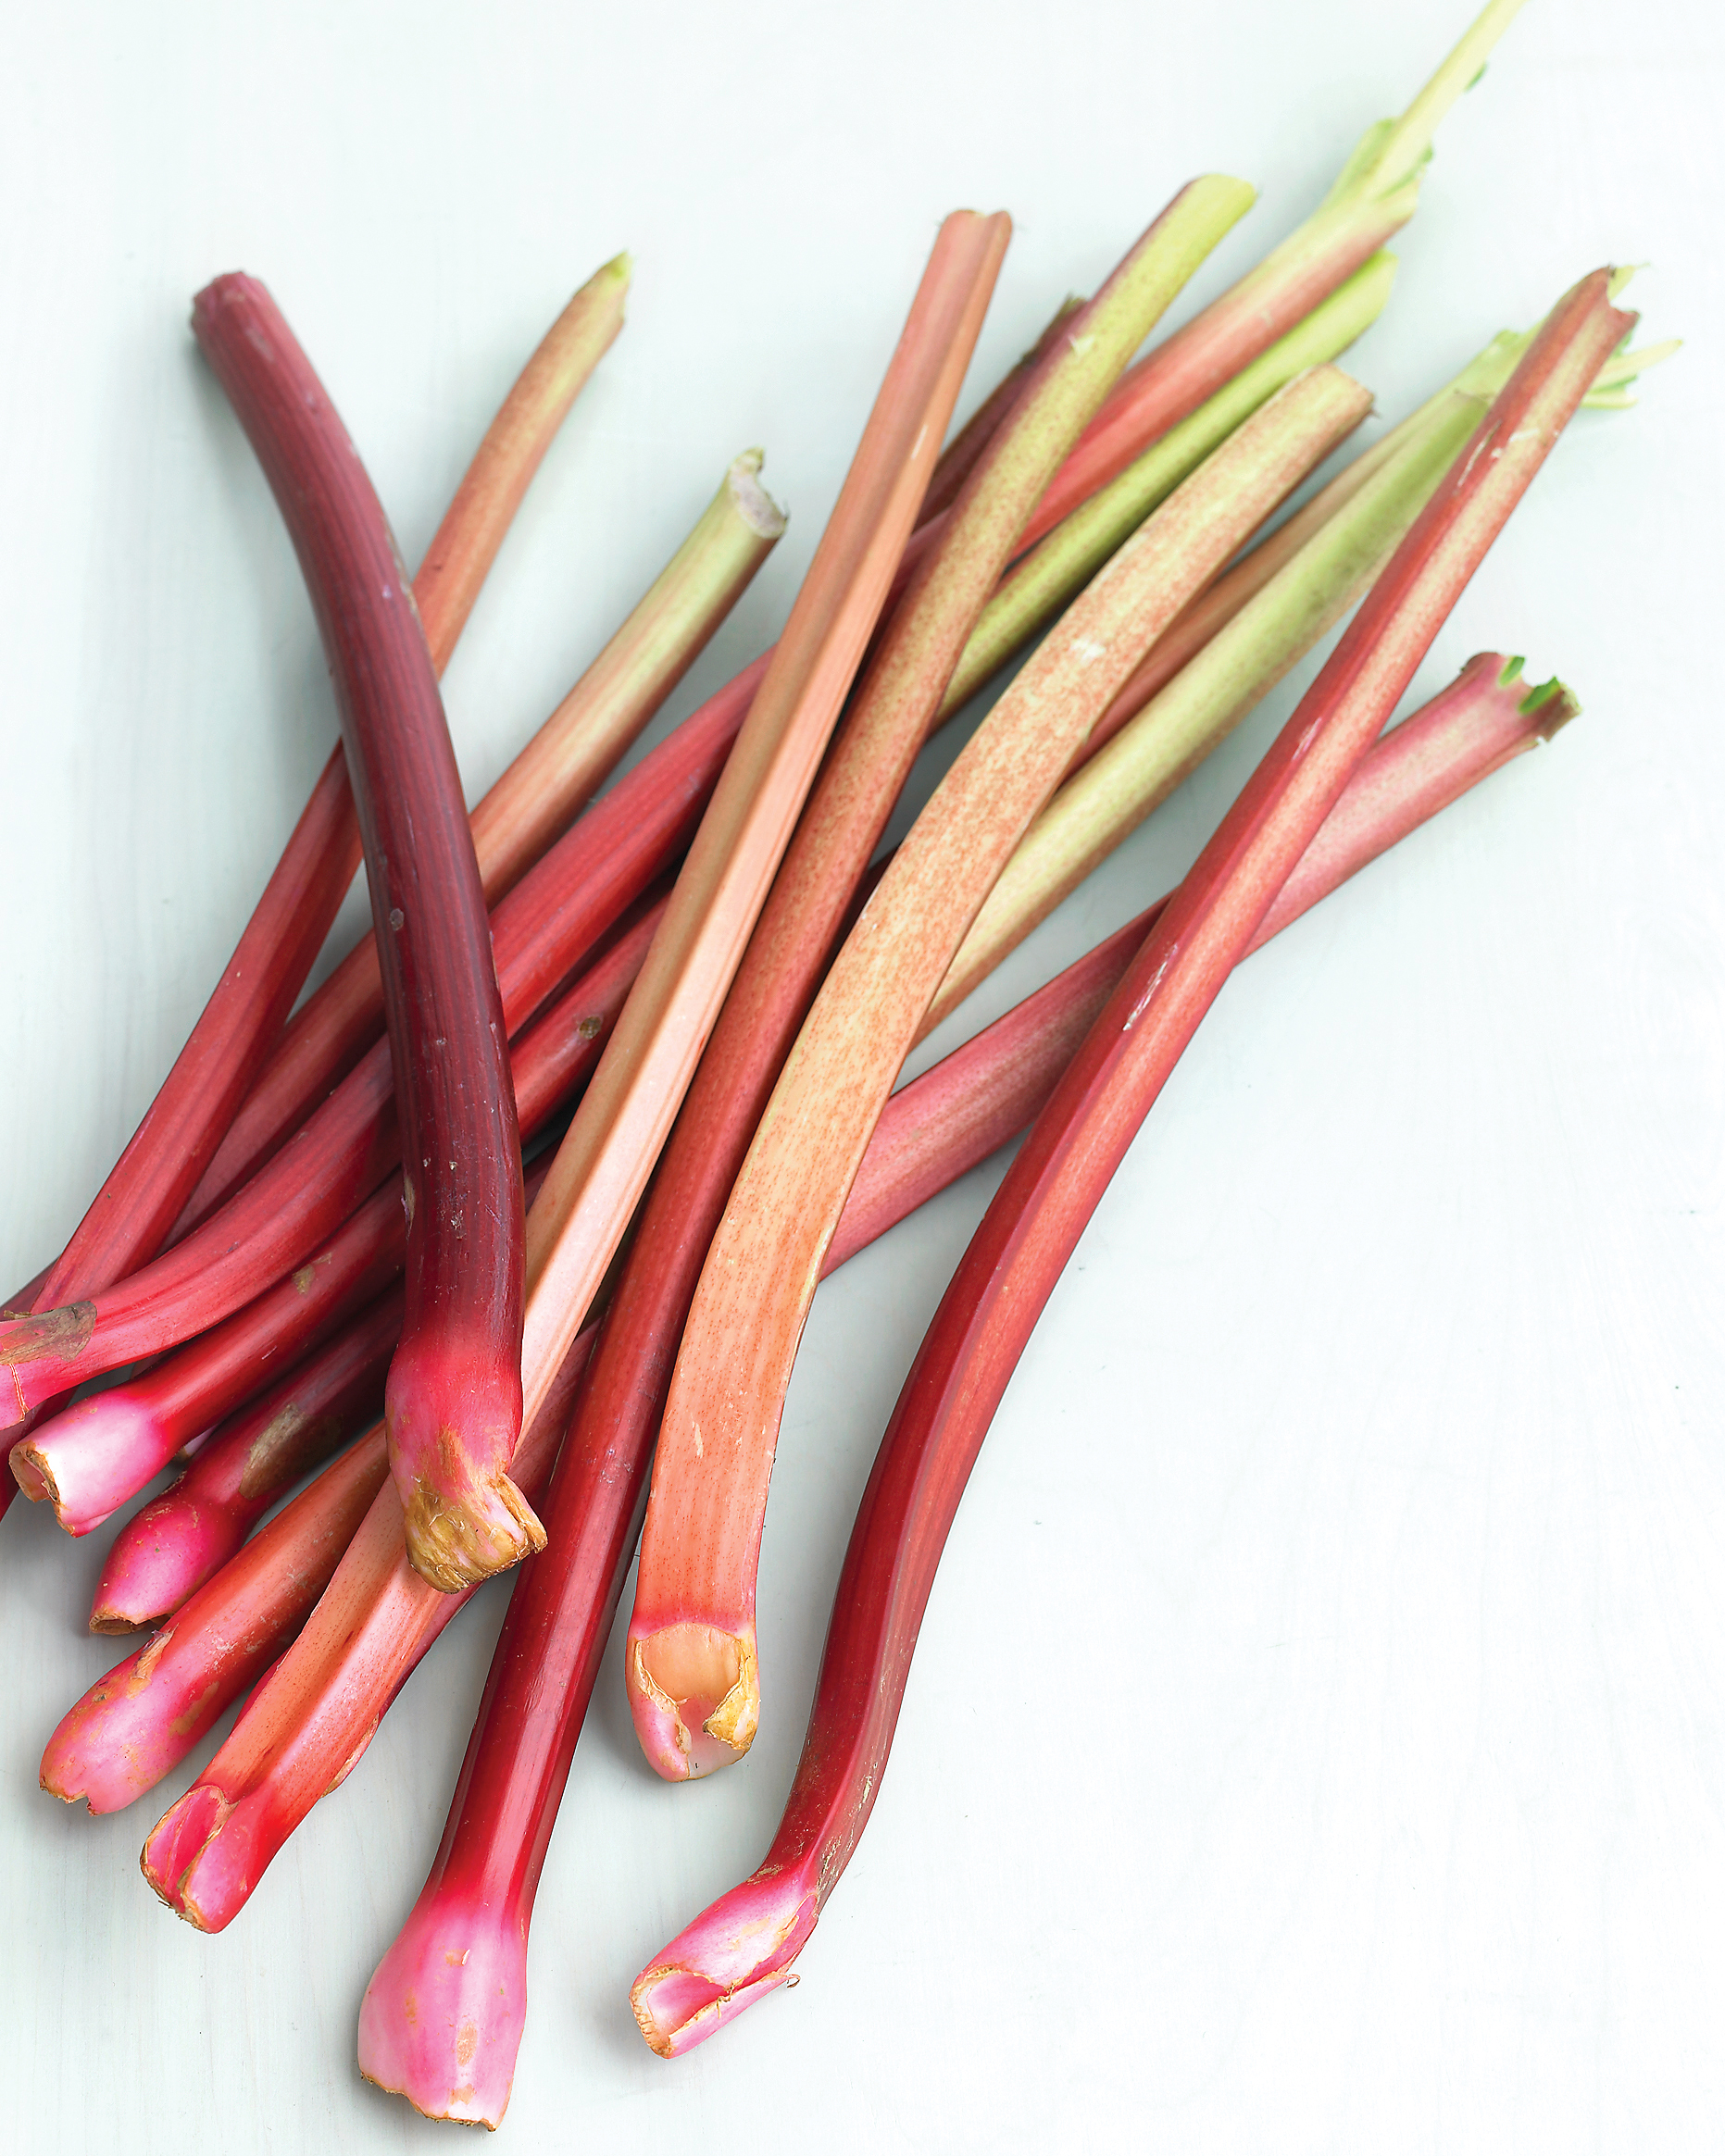 rhubarb bunch